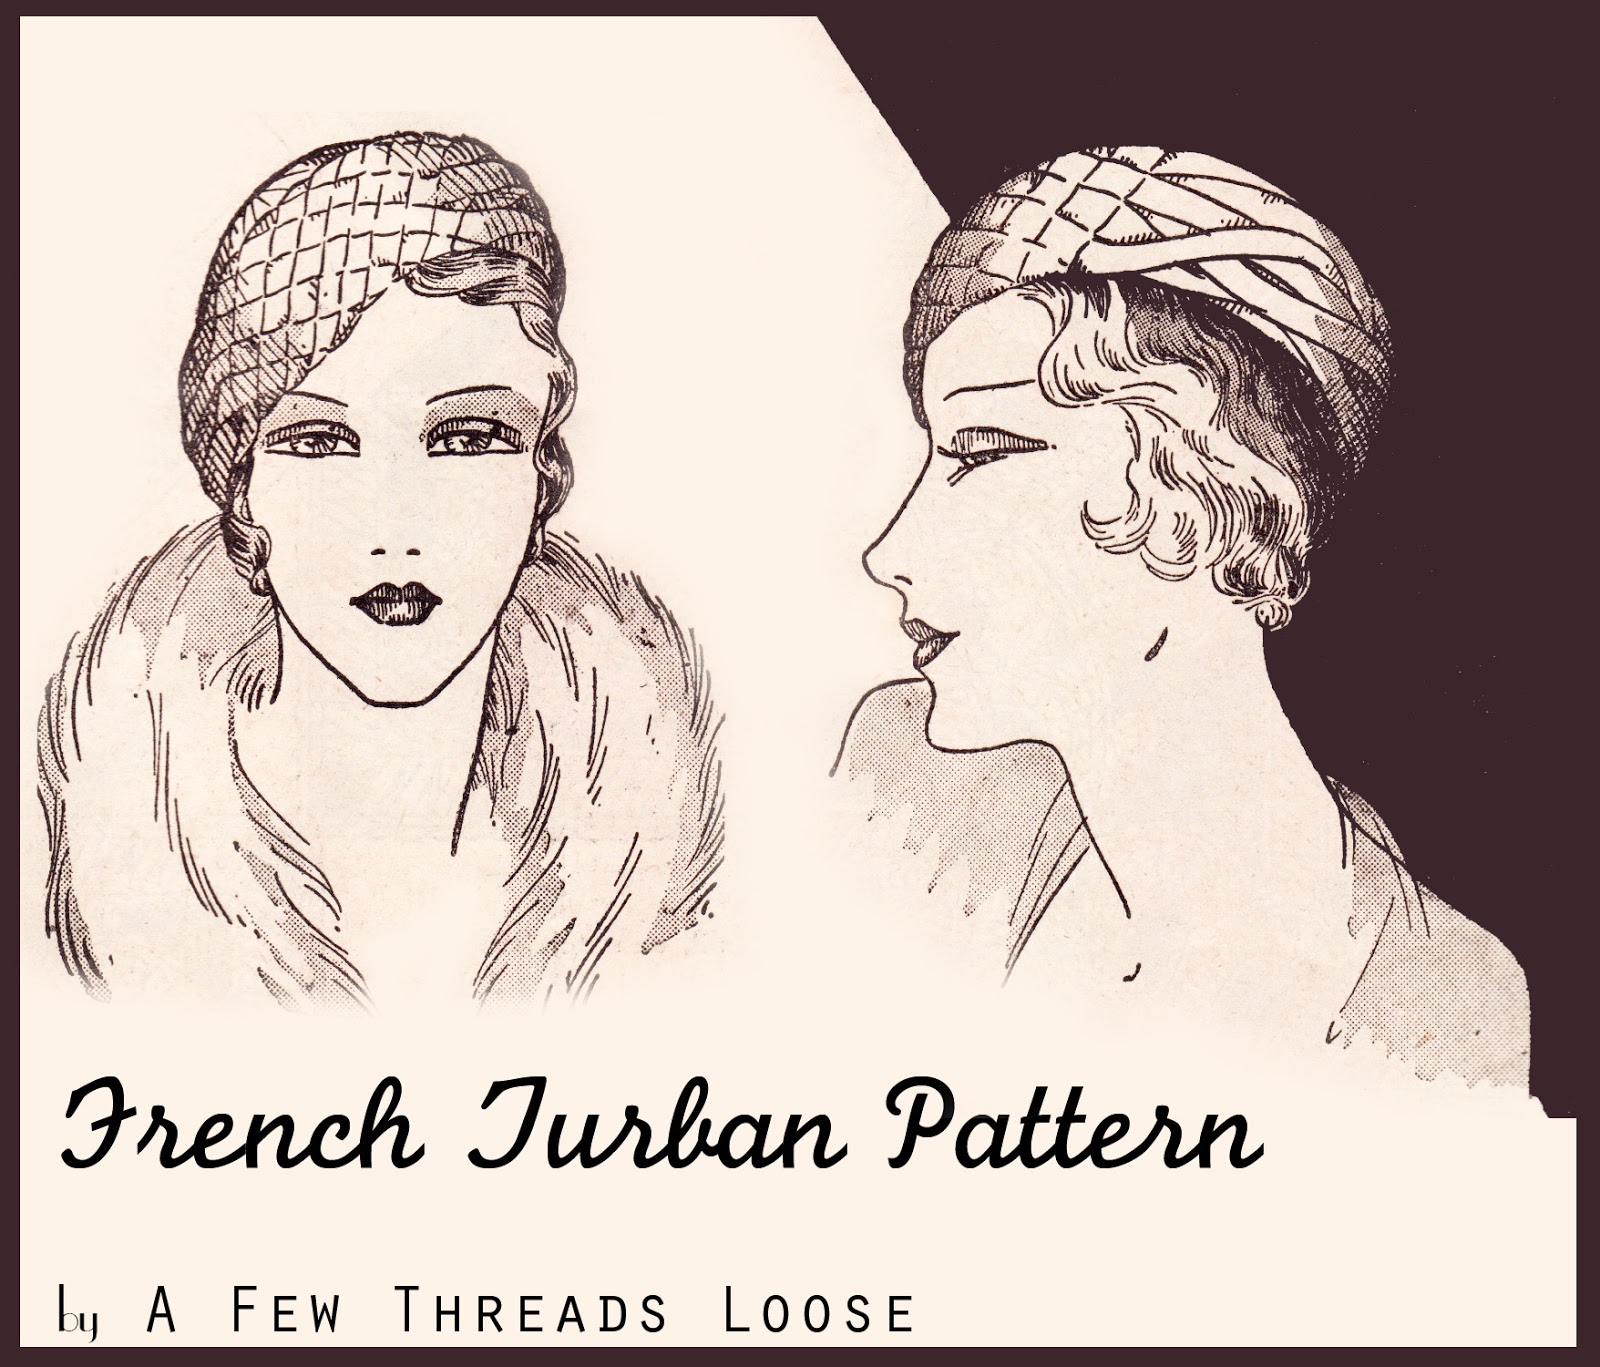 A Few Threads Loose  A Free French Turban Pattern from 1932 a65944fe115